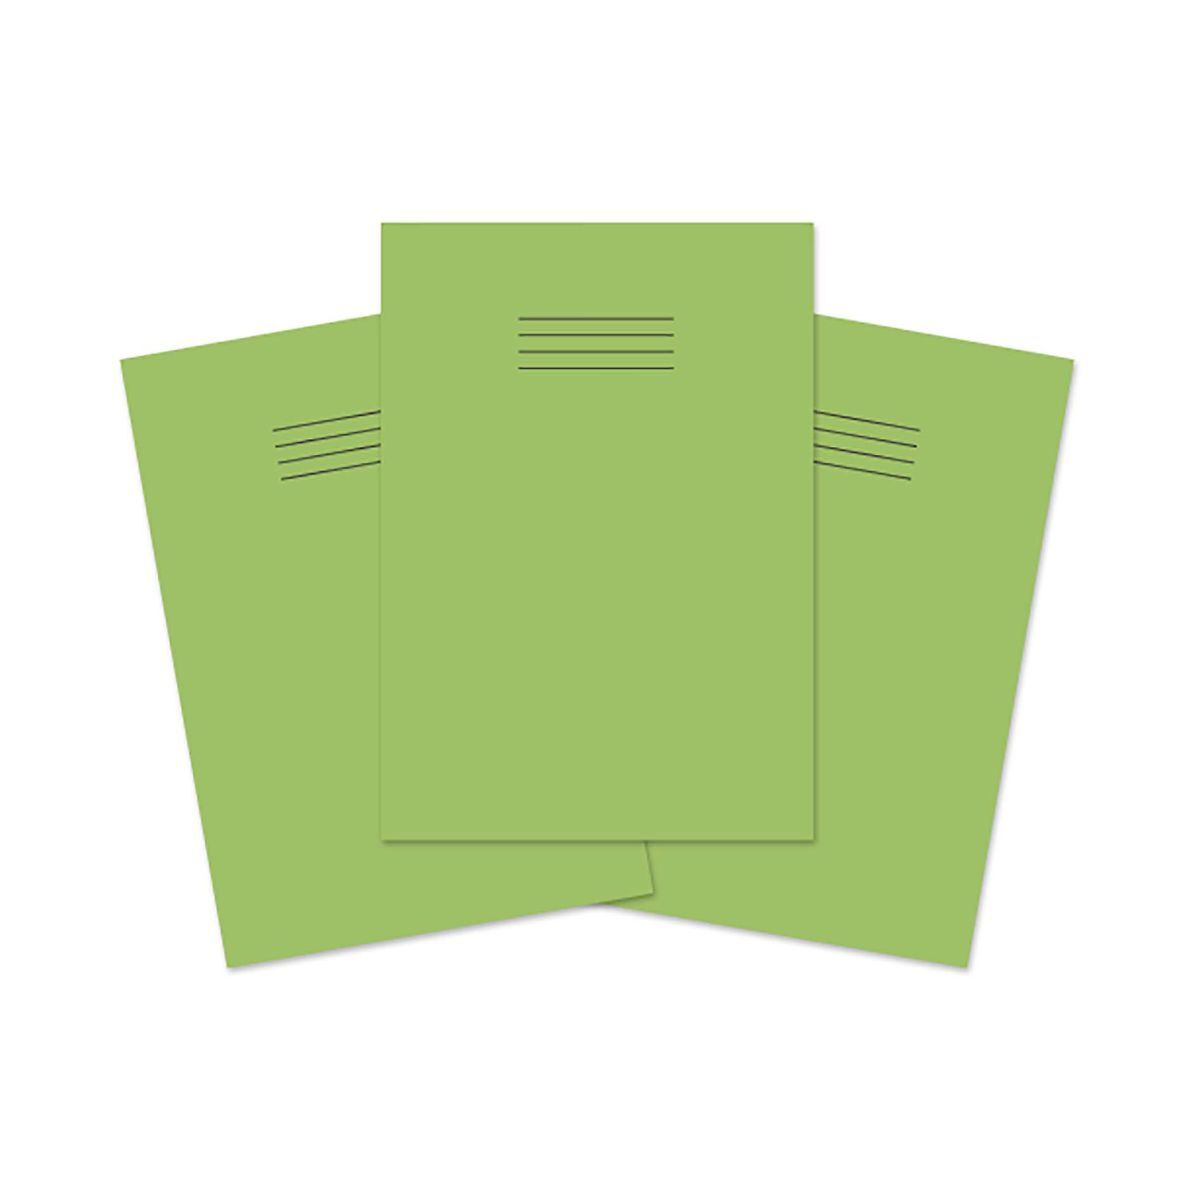 Exercise Book A4 80 page 8mm Ruled and Margin Pack of 50 Light Green